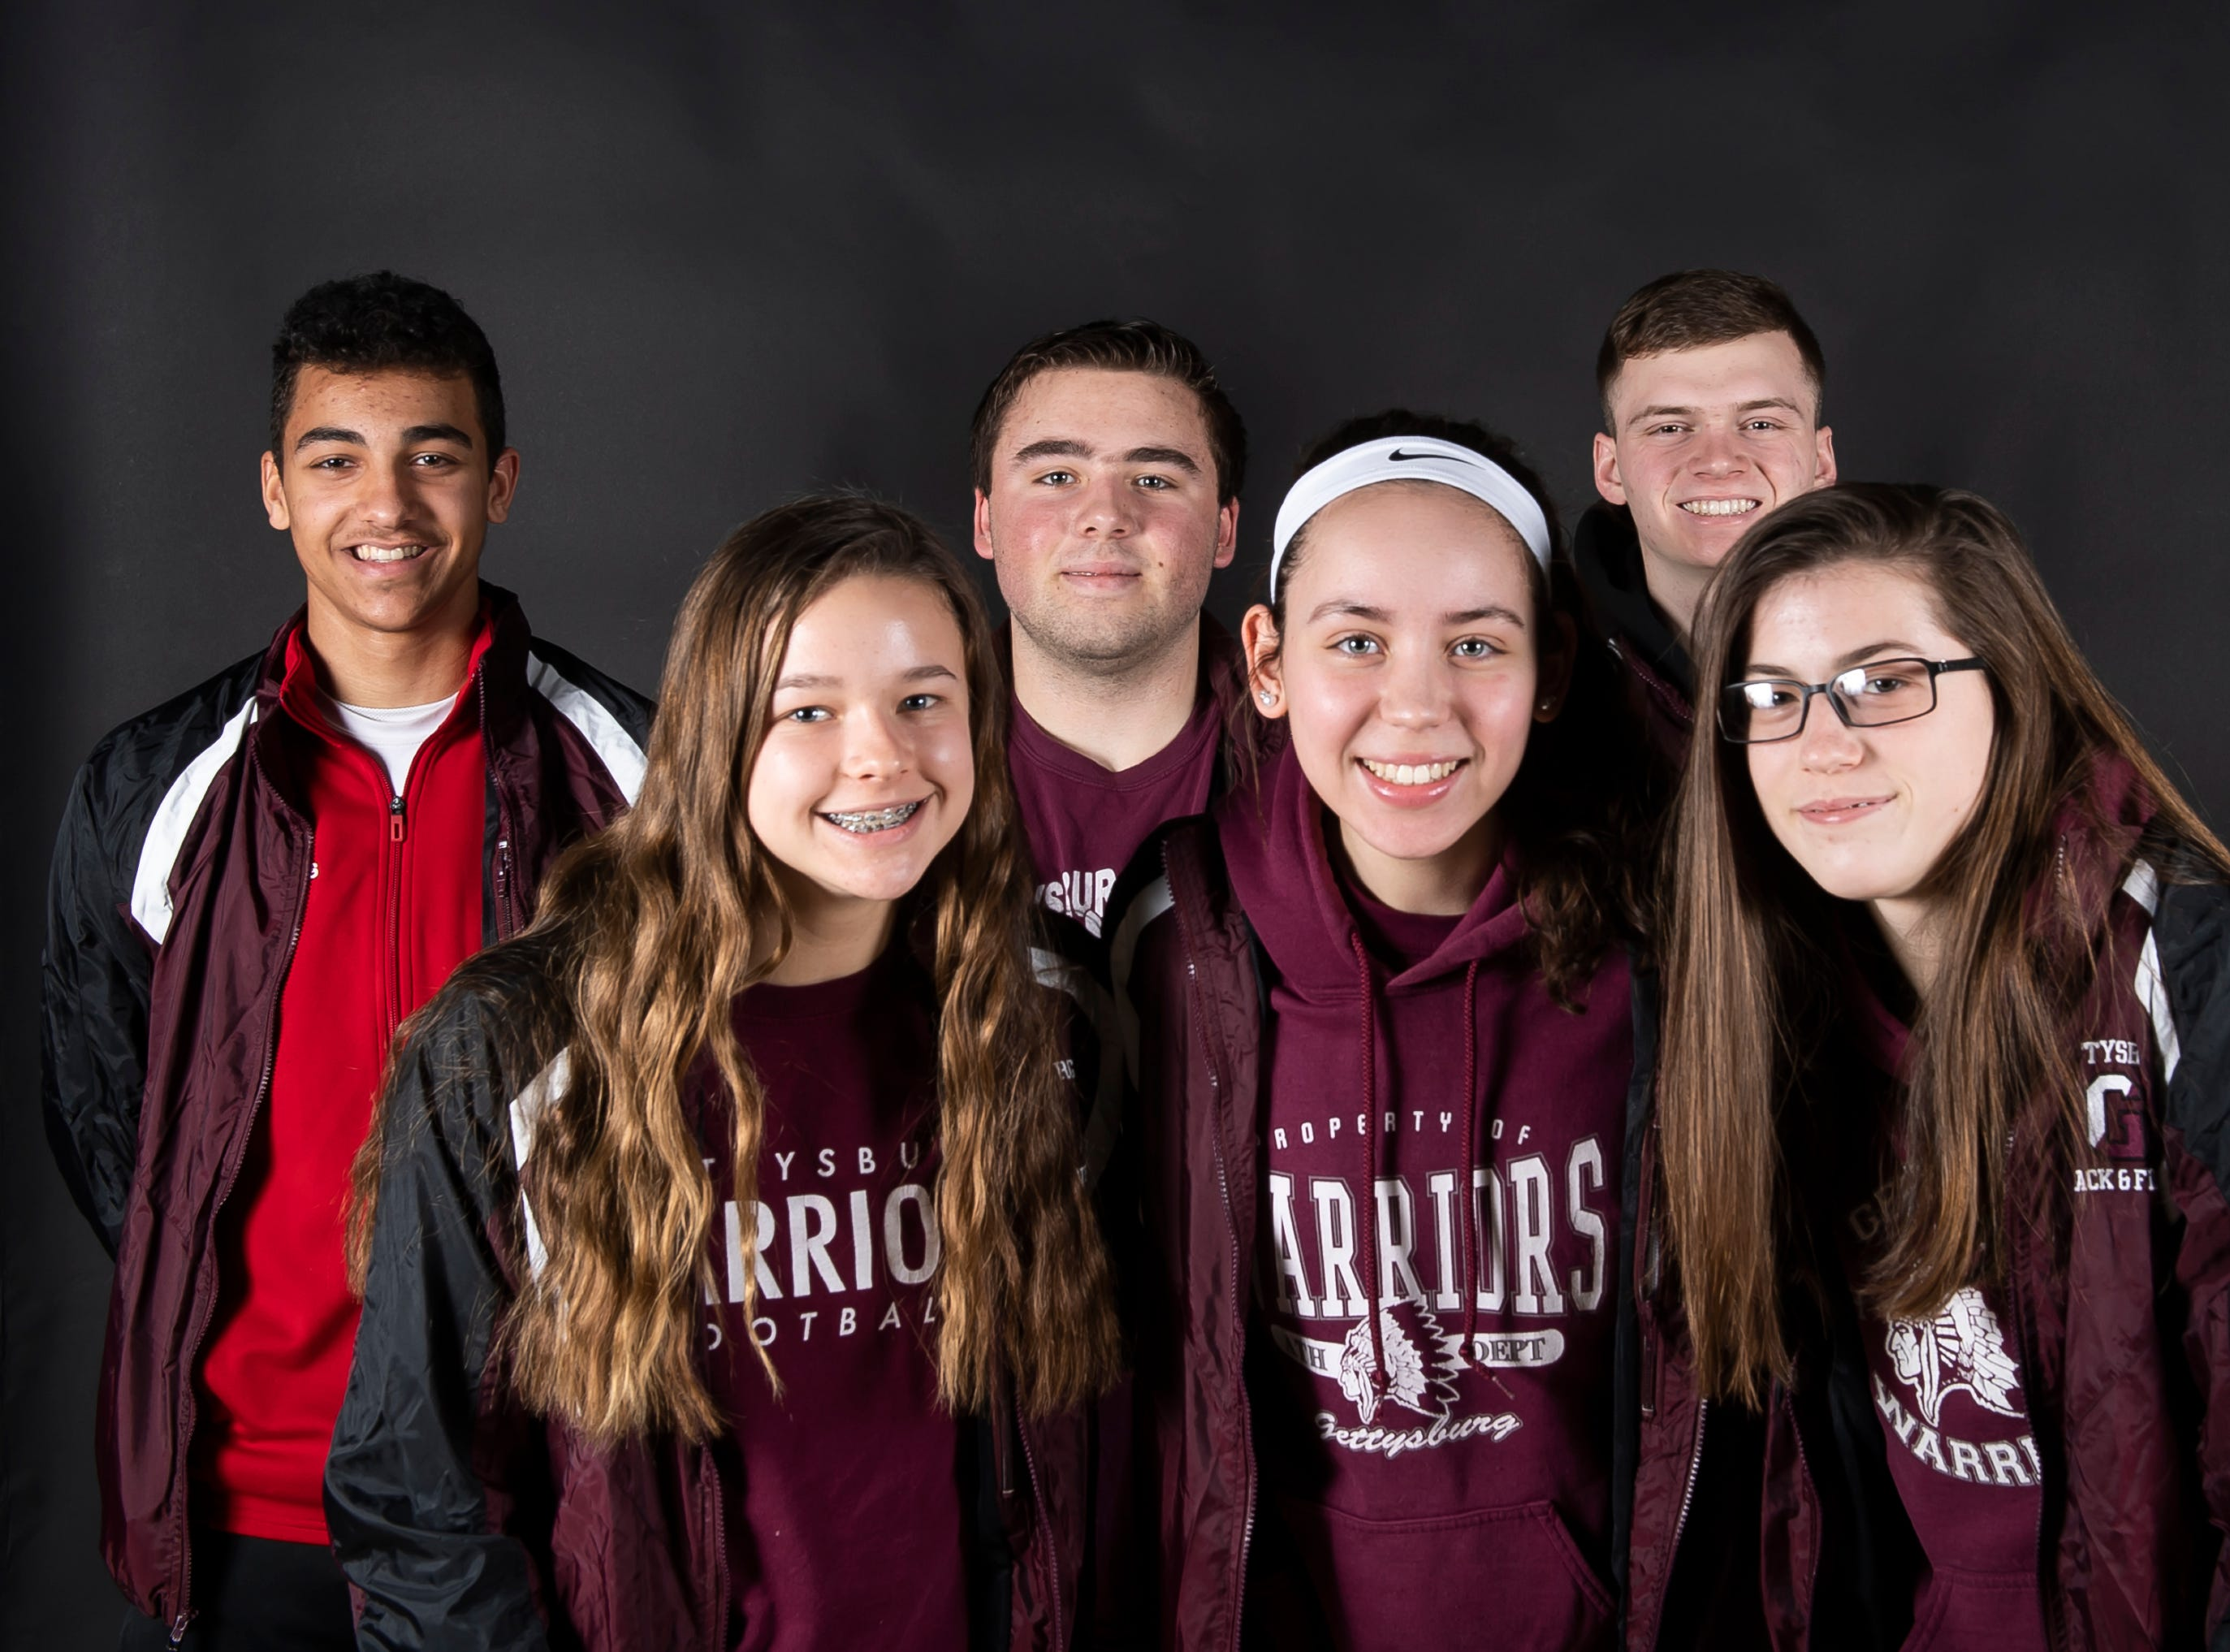 (From back left) Gettysburg track and field athletes Noah Sanders, Cory Bixler, Andrew Hirneisen, Lora Bertram, Sidney Shelton and Kelty Oaster pose in the GameTimePA photo booth during spring sports media day in York Sunday, March 10, 2019.